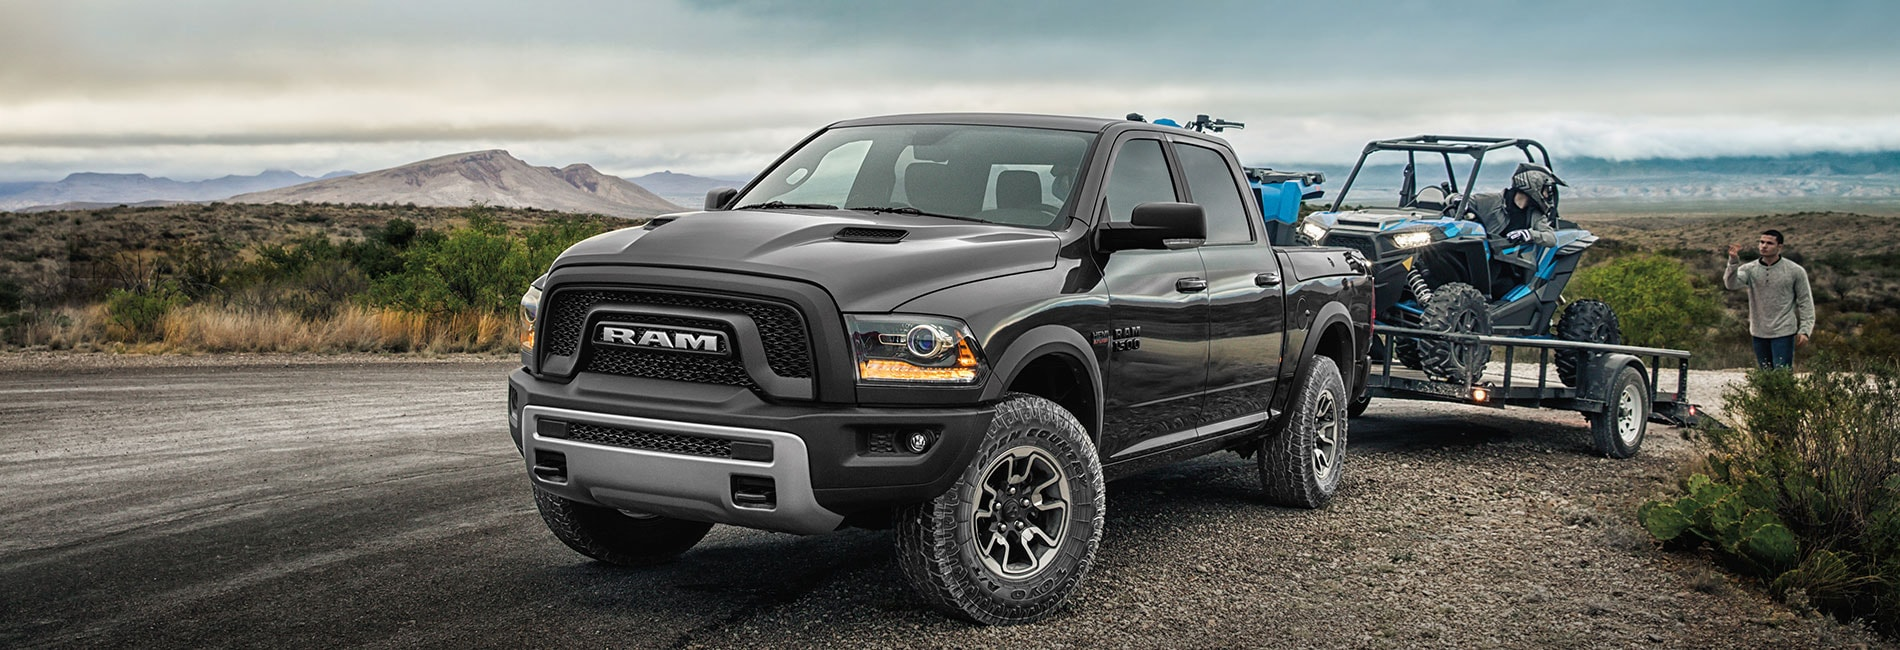 Ram 1500 Exterior Vehicle Features